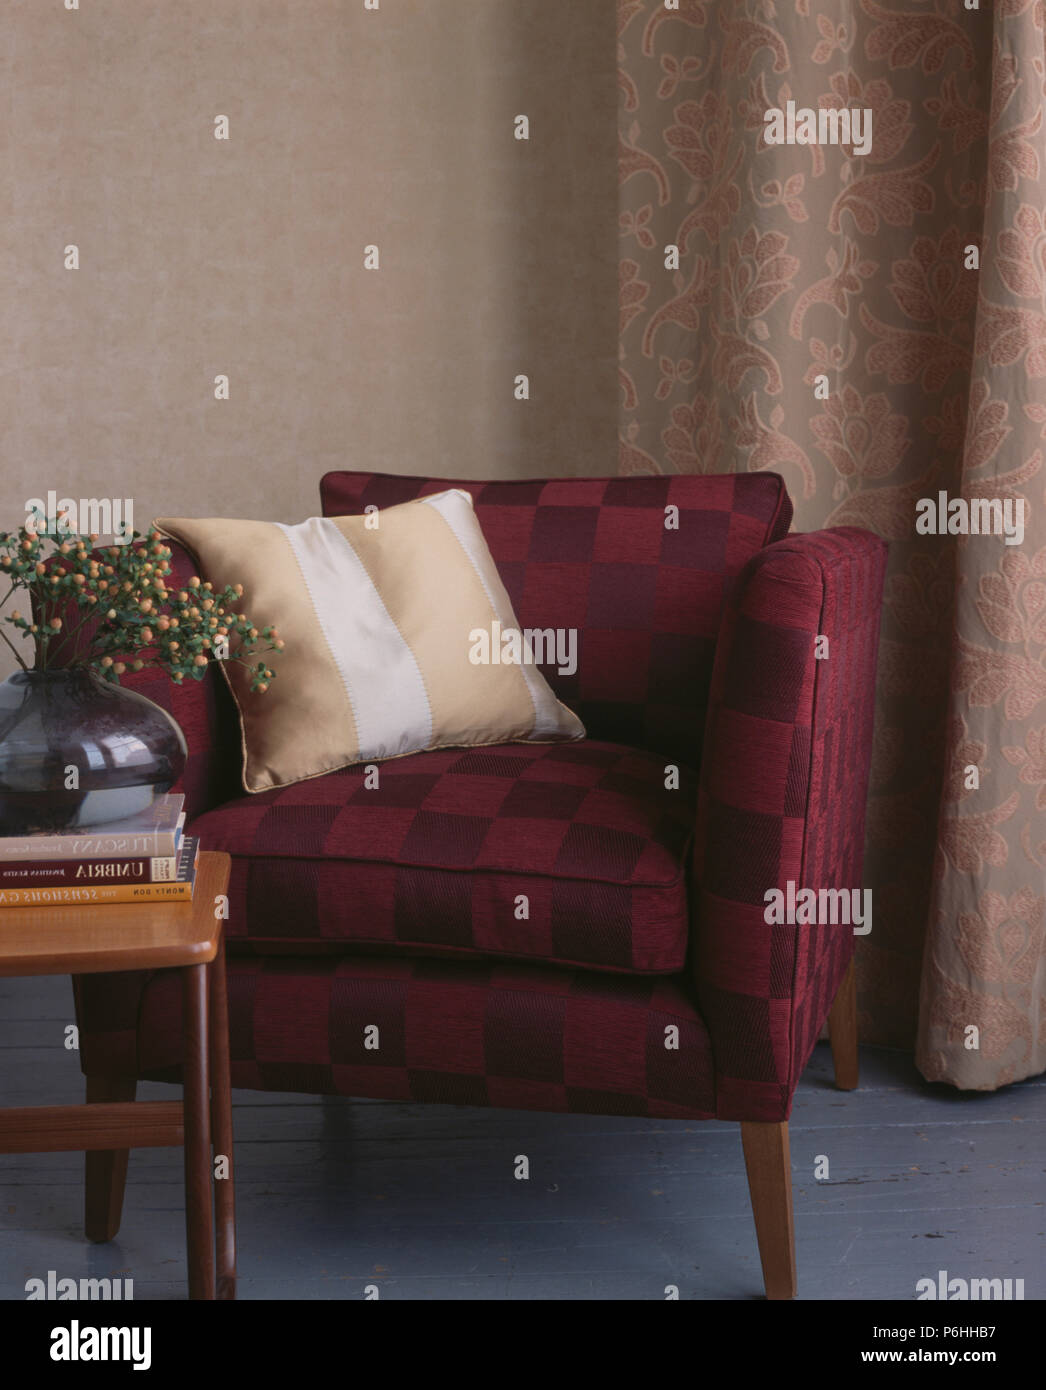 Striped cushion on maroon upholstered chair in front of beige textured floral curtains - Stock Image